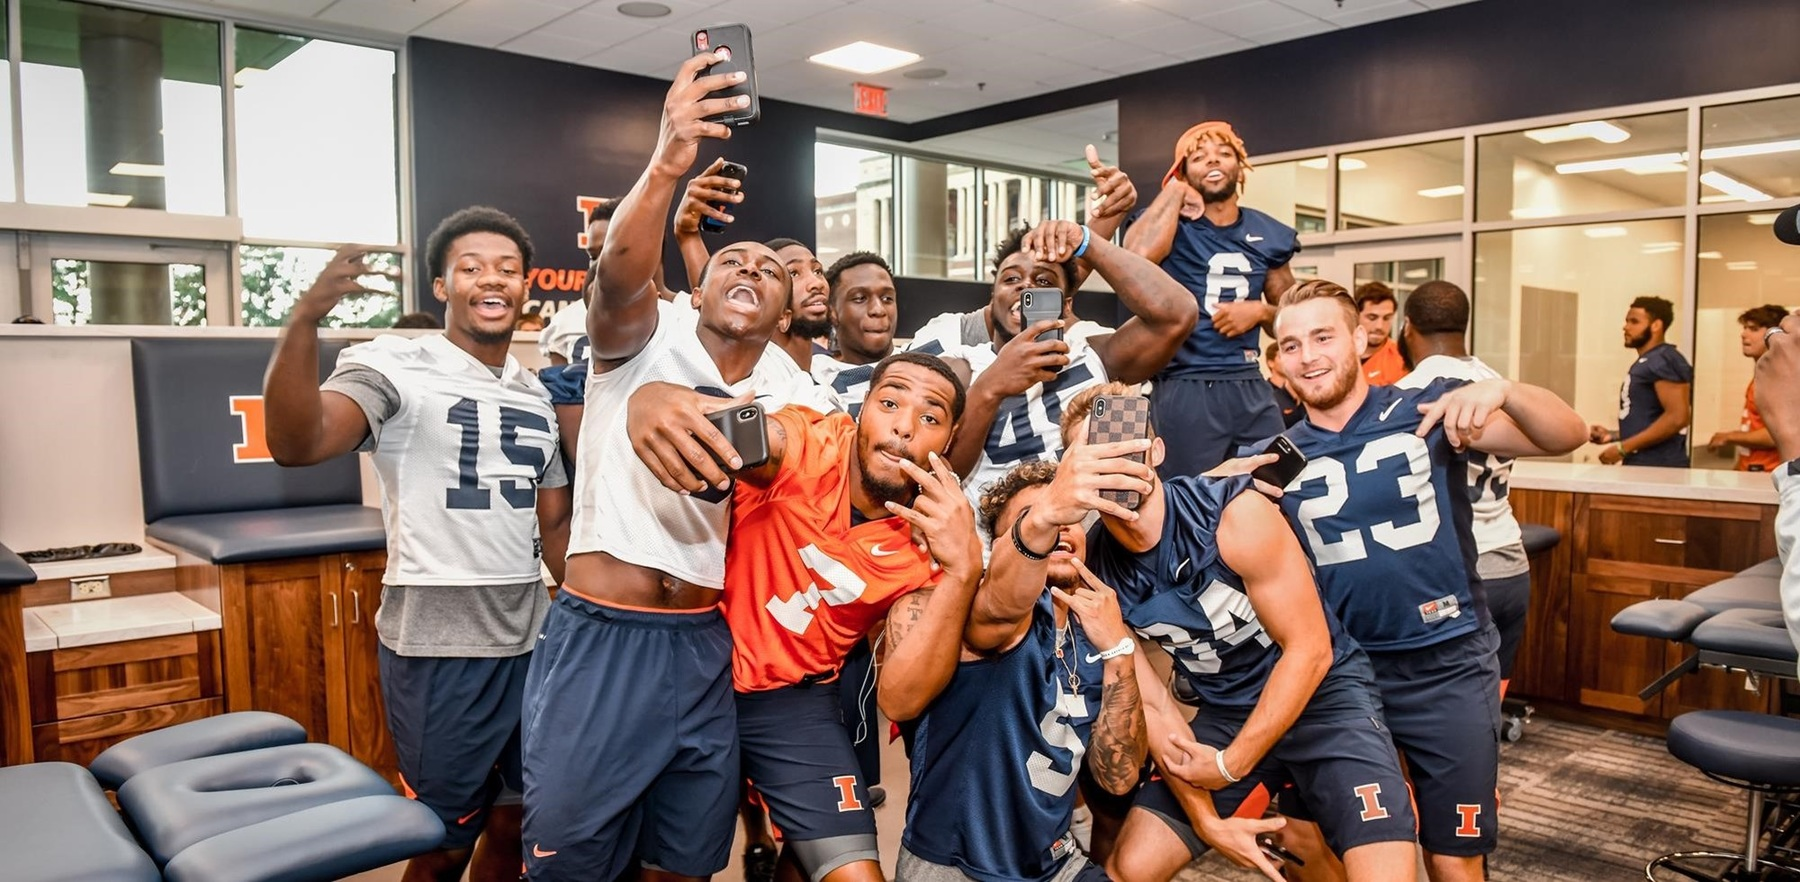 football players goofing for camera in new football facility